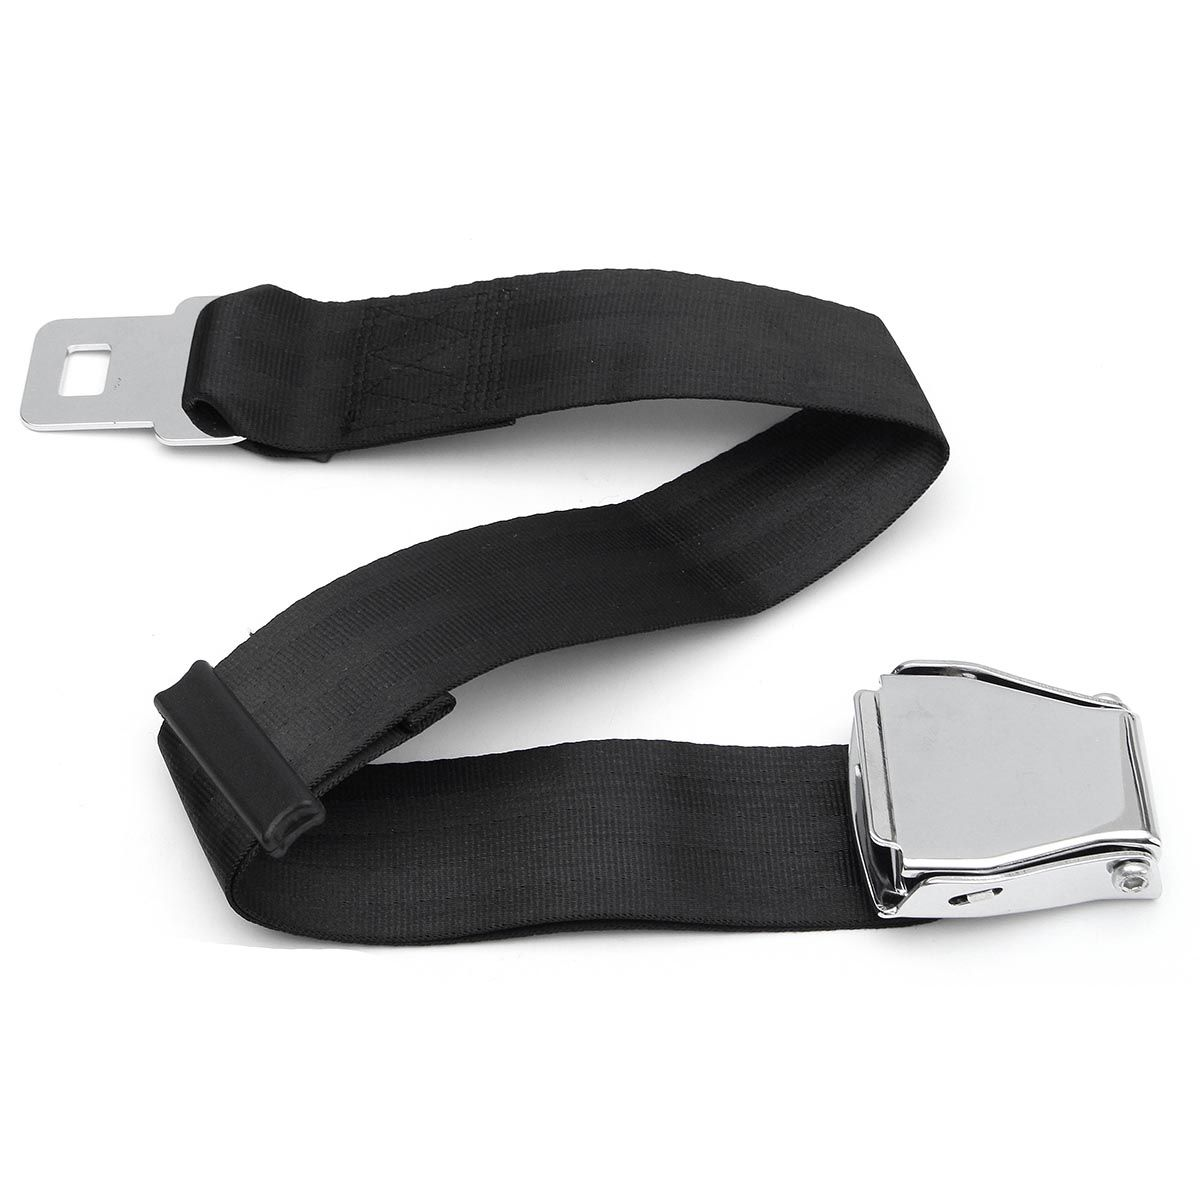 Adjustable Black Airplane Seat Belt Extension Extender Buckle Aircraft Buckle Belt Extended High-strength Polyester Webbing